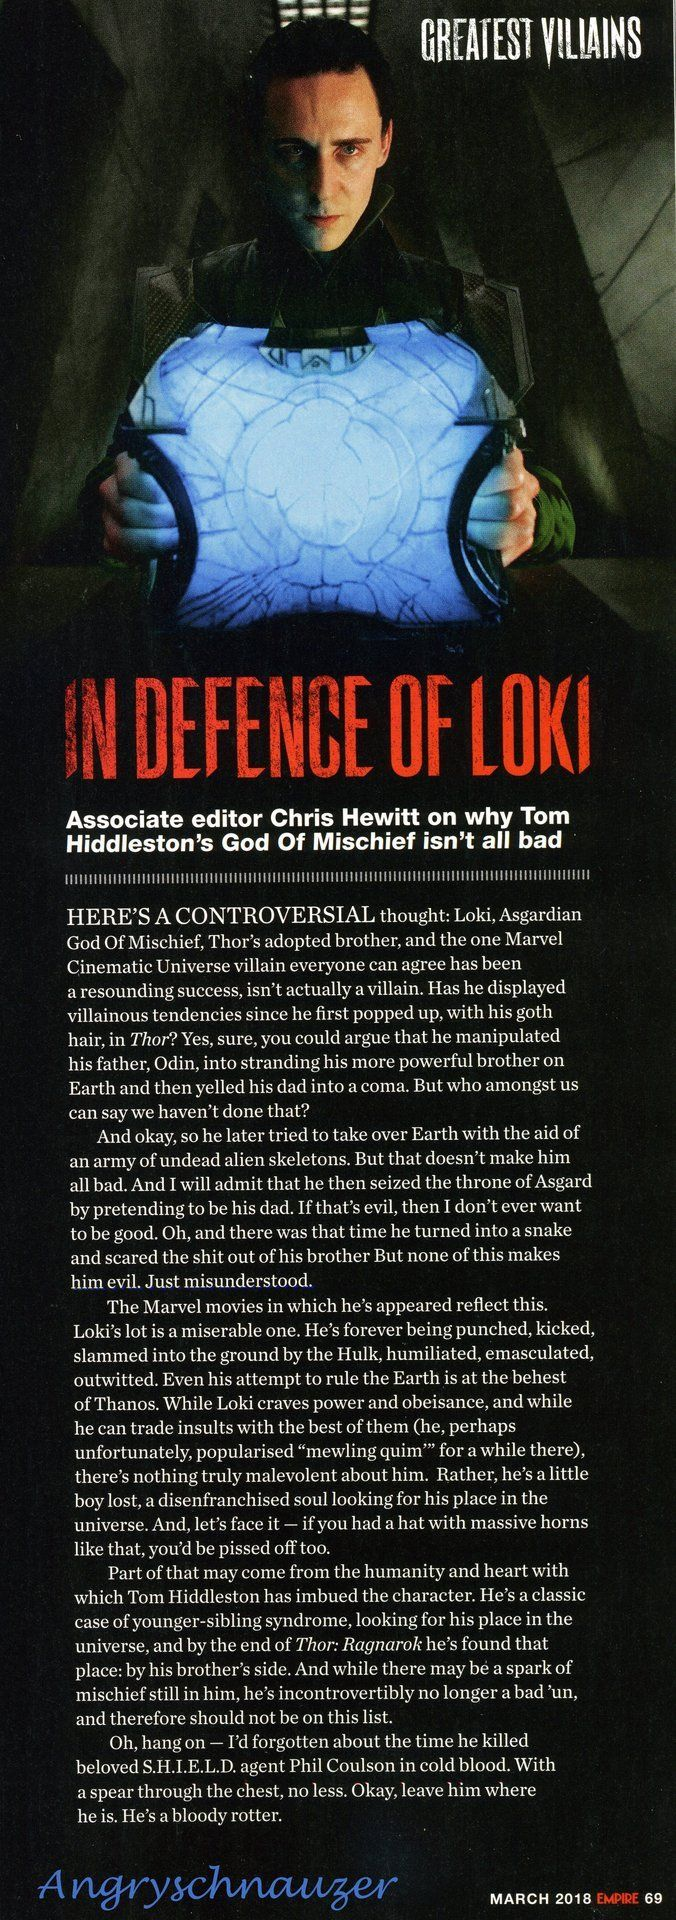 Empire MagazineS Top  Villains Of All Time  Loki March